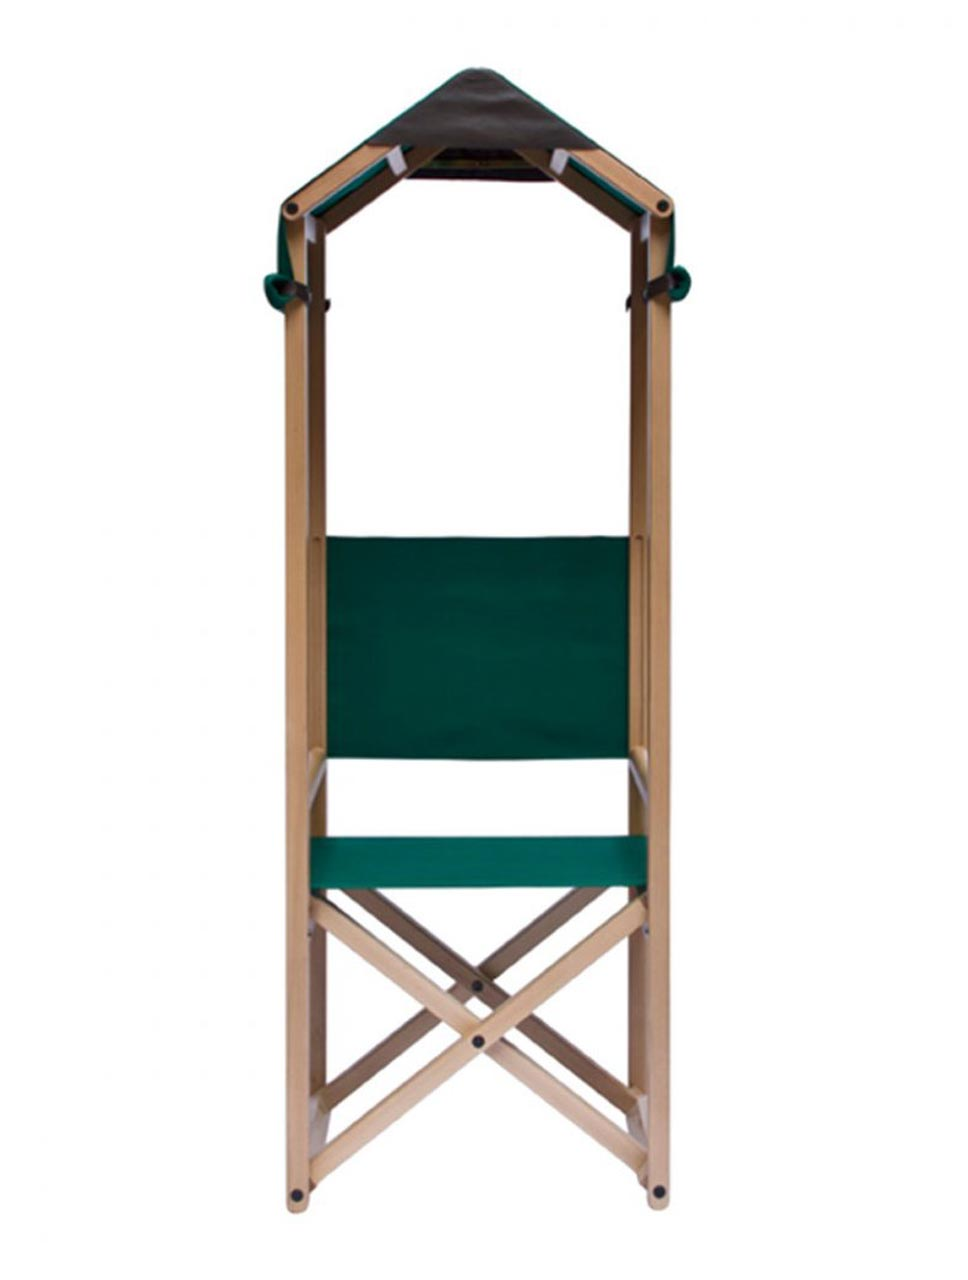 Rolo by Internoitaliano the chair acting as an outdoor